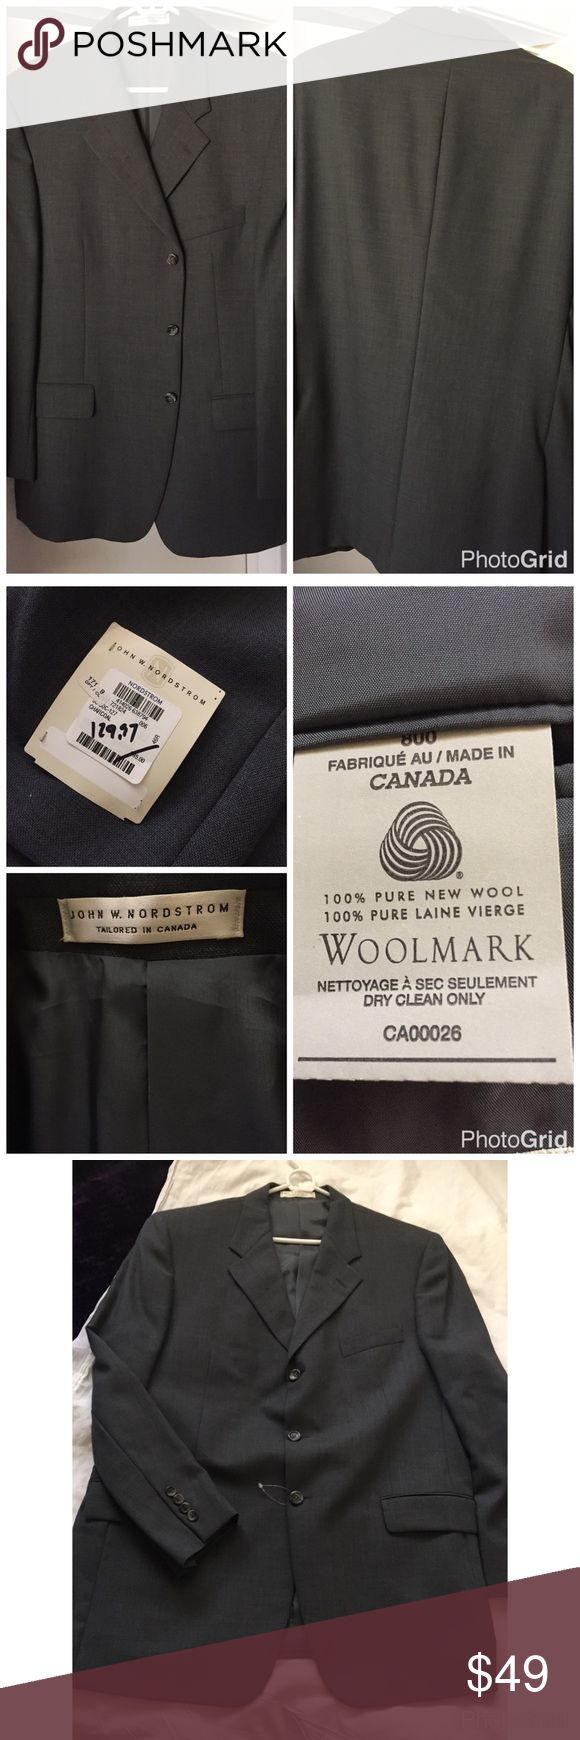 John W Nordstrom Sport Jacket👔 Tailored in Canada 🇨🇦, very classic nice 3 button sports coat color is charcoal. 💯% pure new wool 💯% pure Laine vierge. Fully lined with inside pockets. Front pockets unstitched. Really nice jacket. A little thread out of place see last pic you really can't tell, any measurements please ask before purchase 😍 John W. Nordstrom Suits & Blazers Sport Coats & Blazers